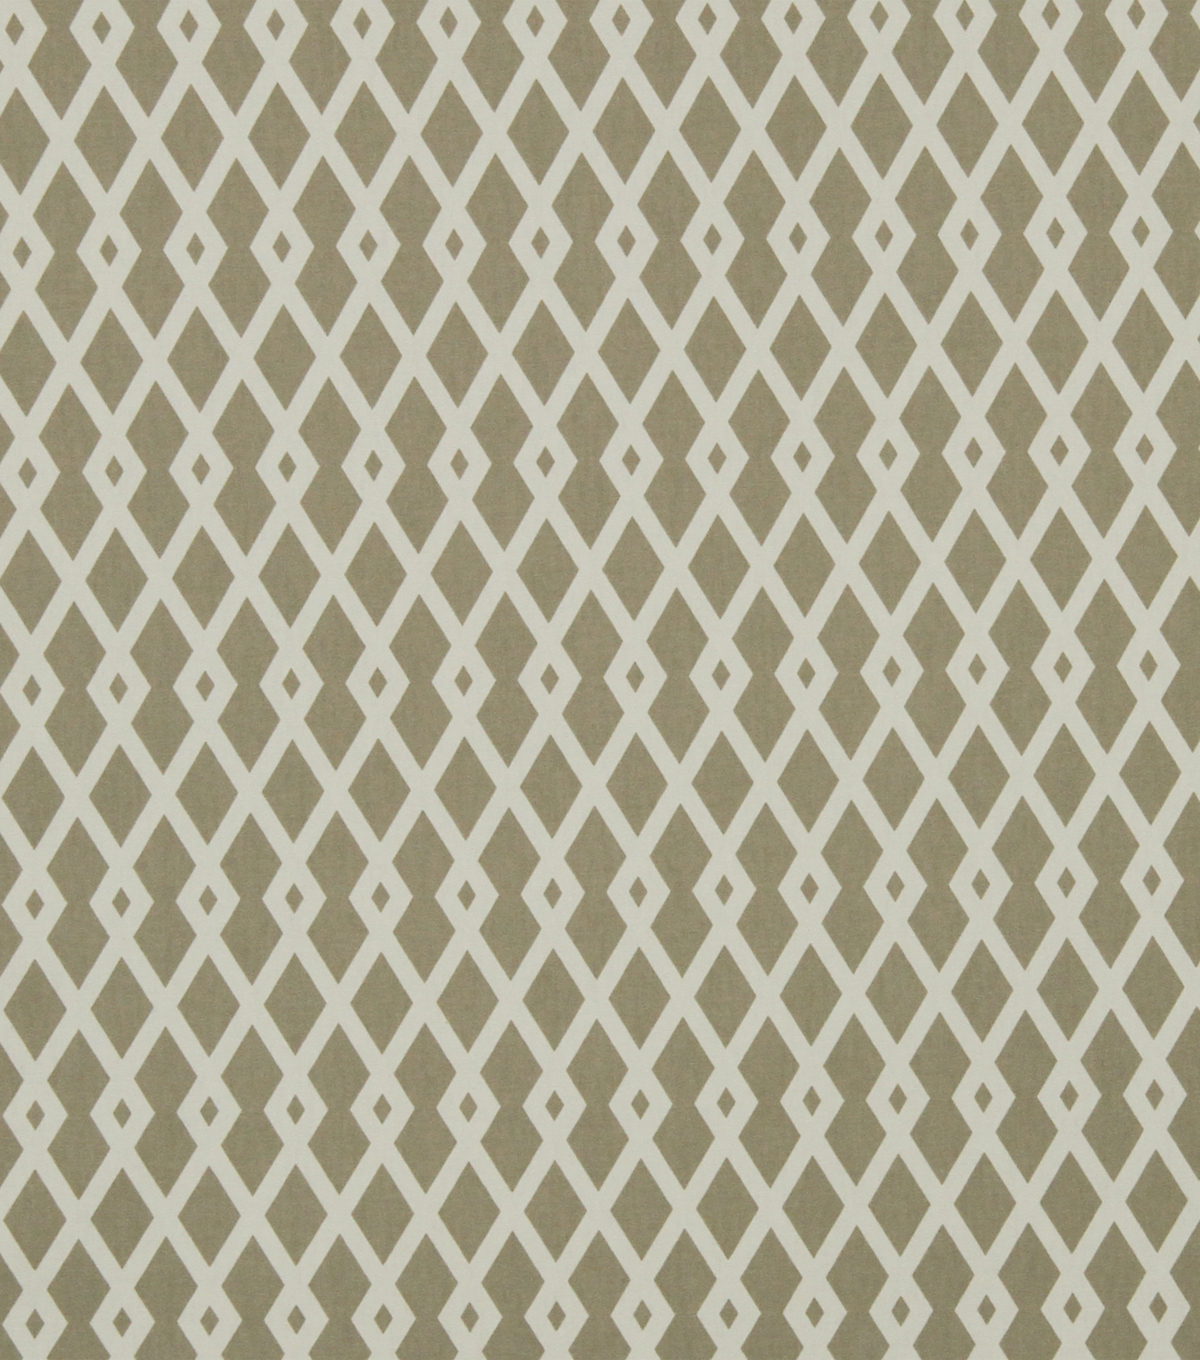 Home Decor 8\u0022x8\u0022 Fabric Swatch-Robert Allen Graphic Fret Flax